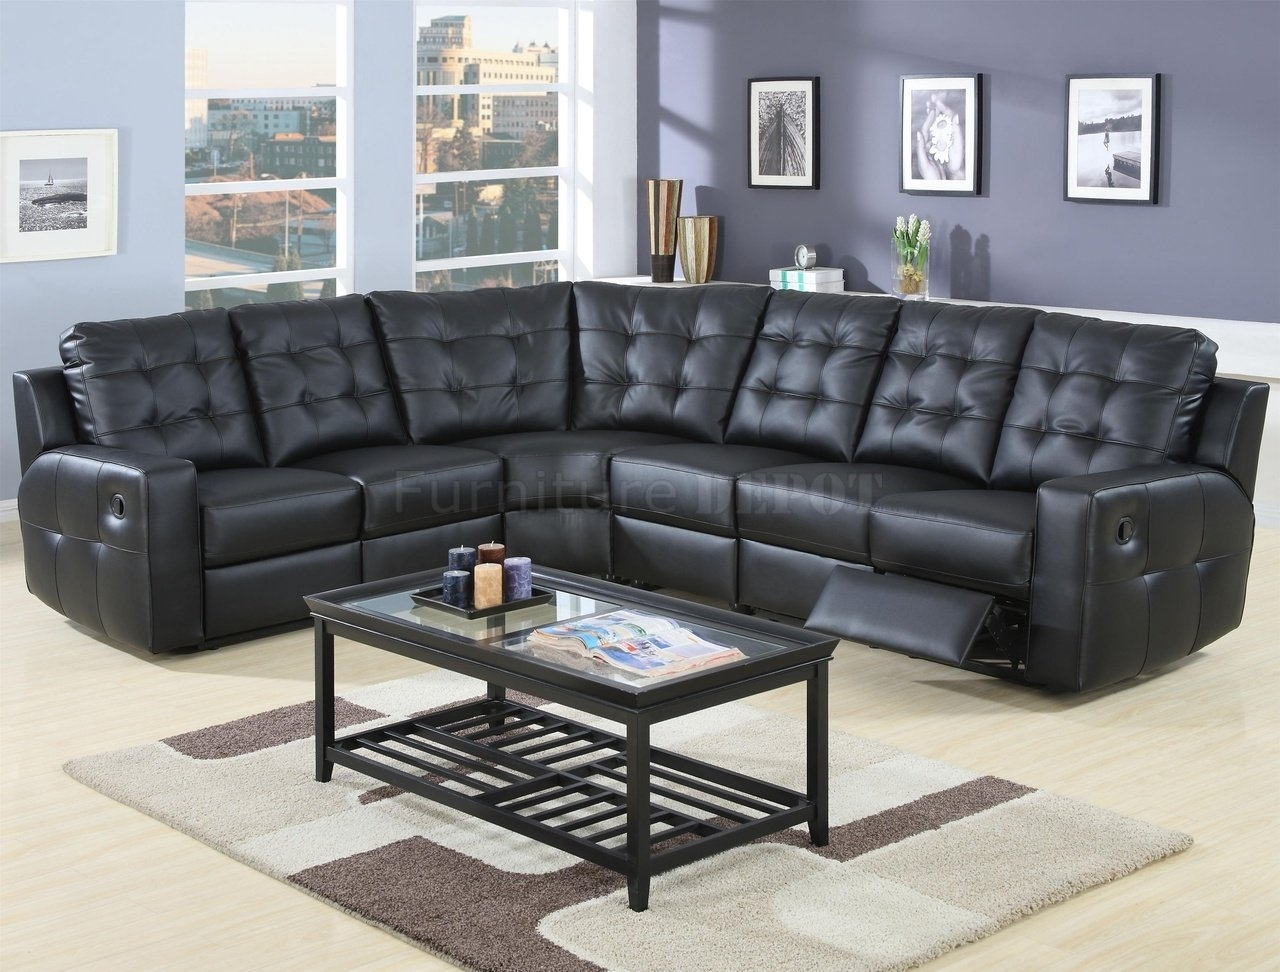 The Most Popular Sectional Sofas Austin Tx 80 On Leather Reclining Pertaining To Austin Sectional Sofas (View 4 of 10)